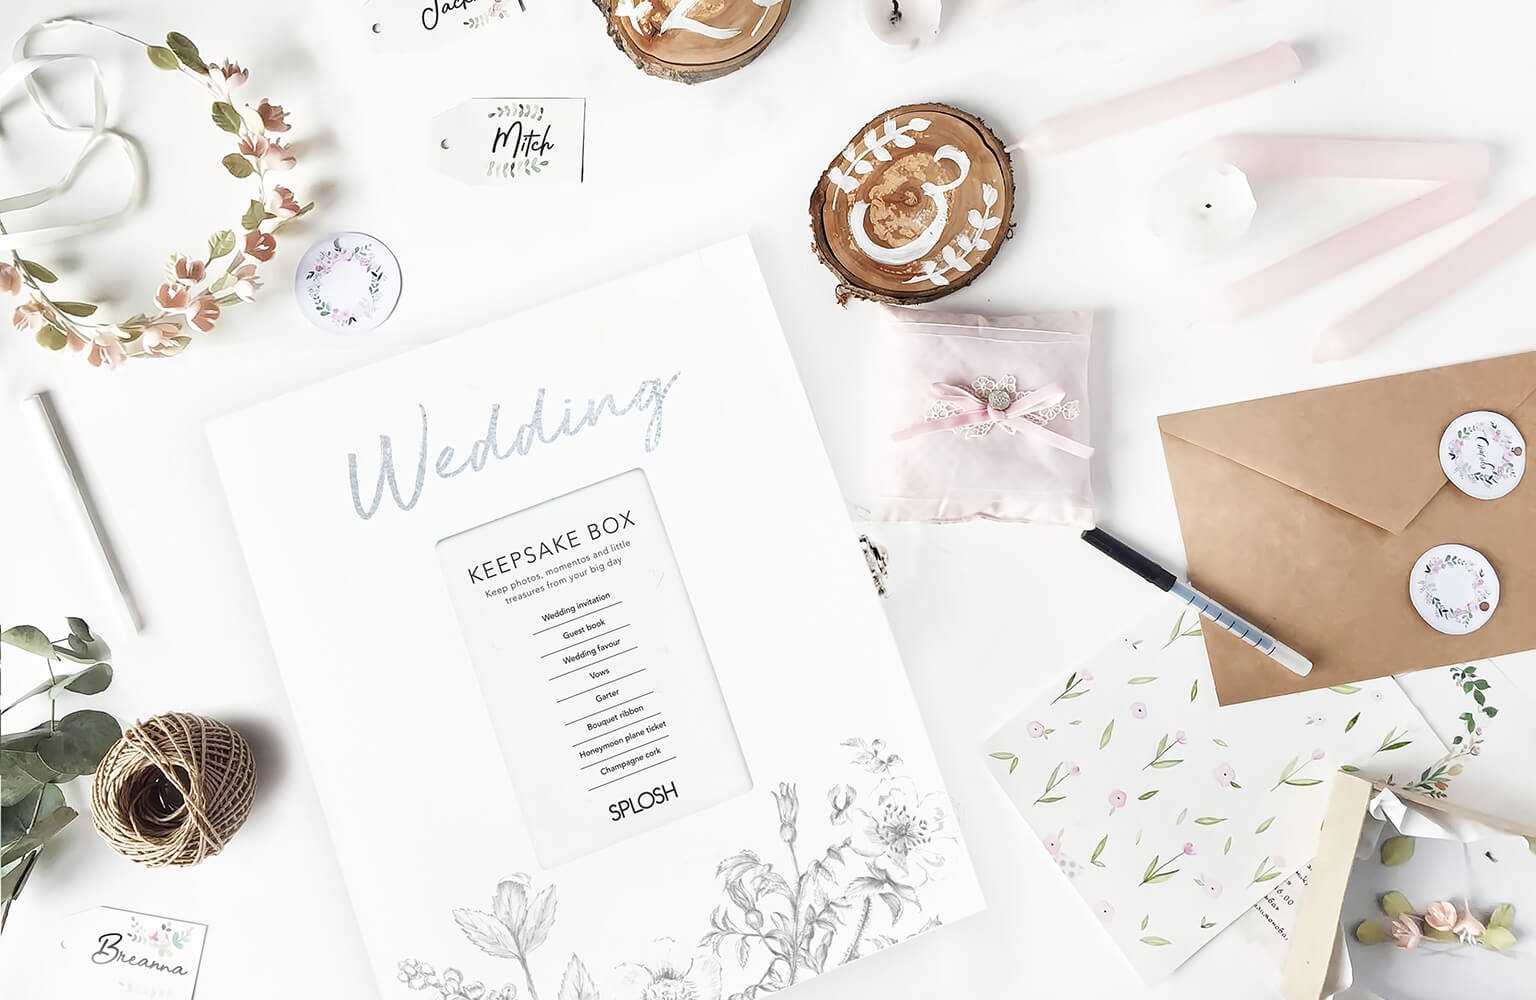 Gifts and décor for your special day